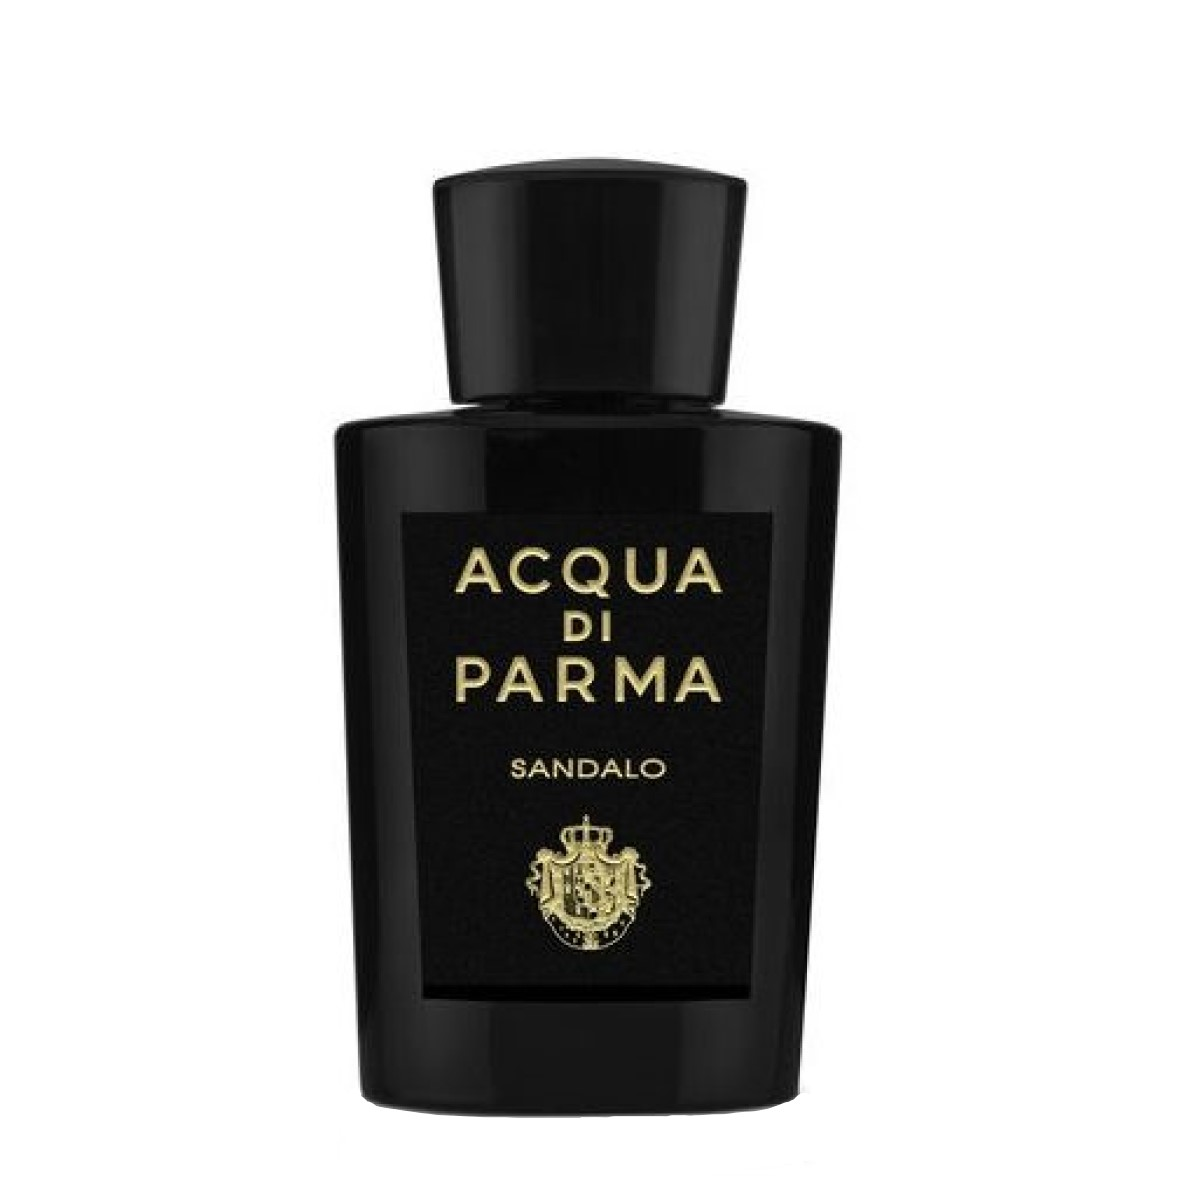 Acqua-Di-Parma-Sandalo-EDP-180-ml-e1607600369365